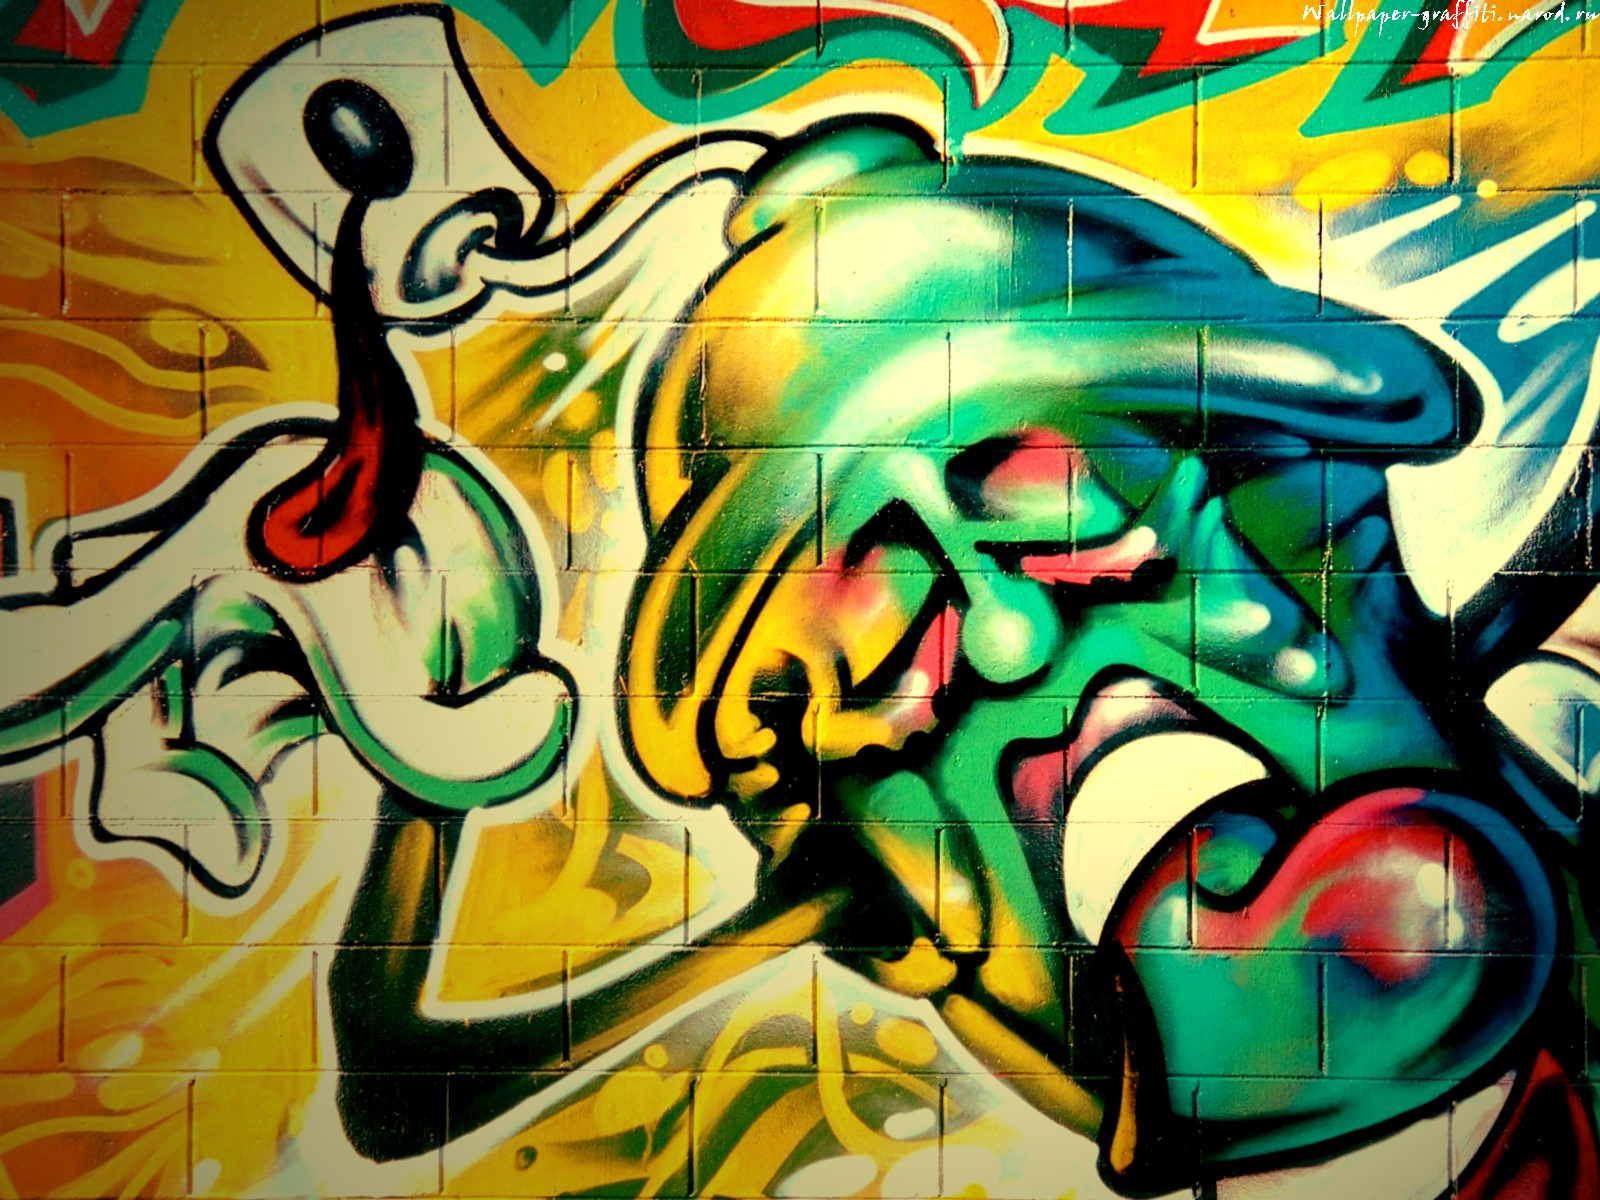 Graffiti wallpaper free download cool wallpapers graffiti